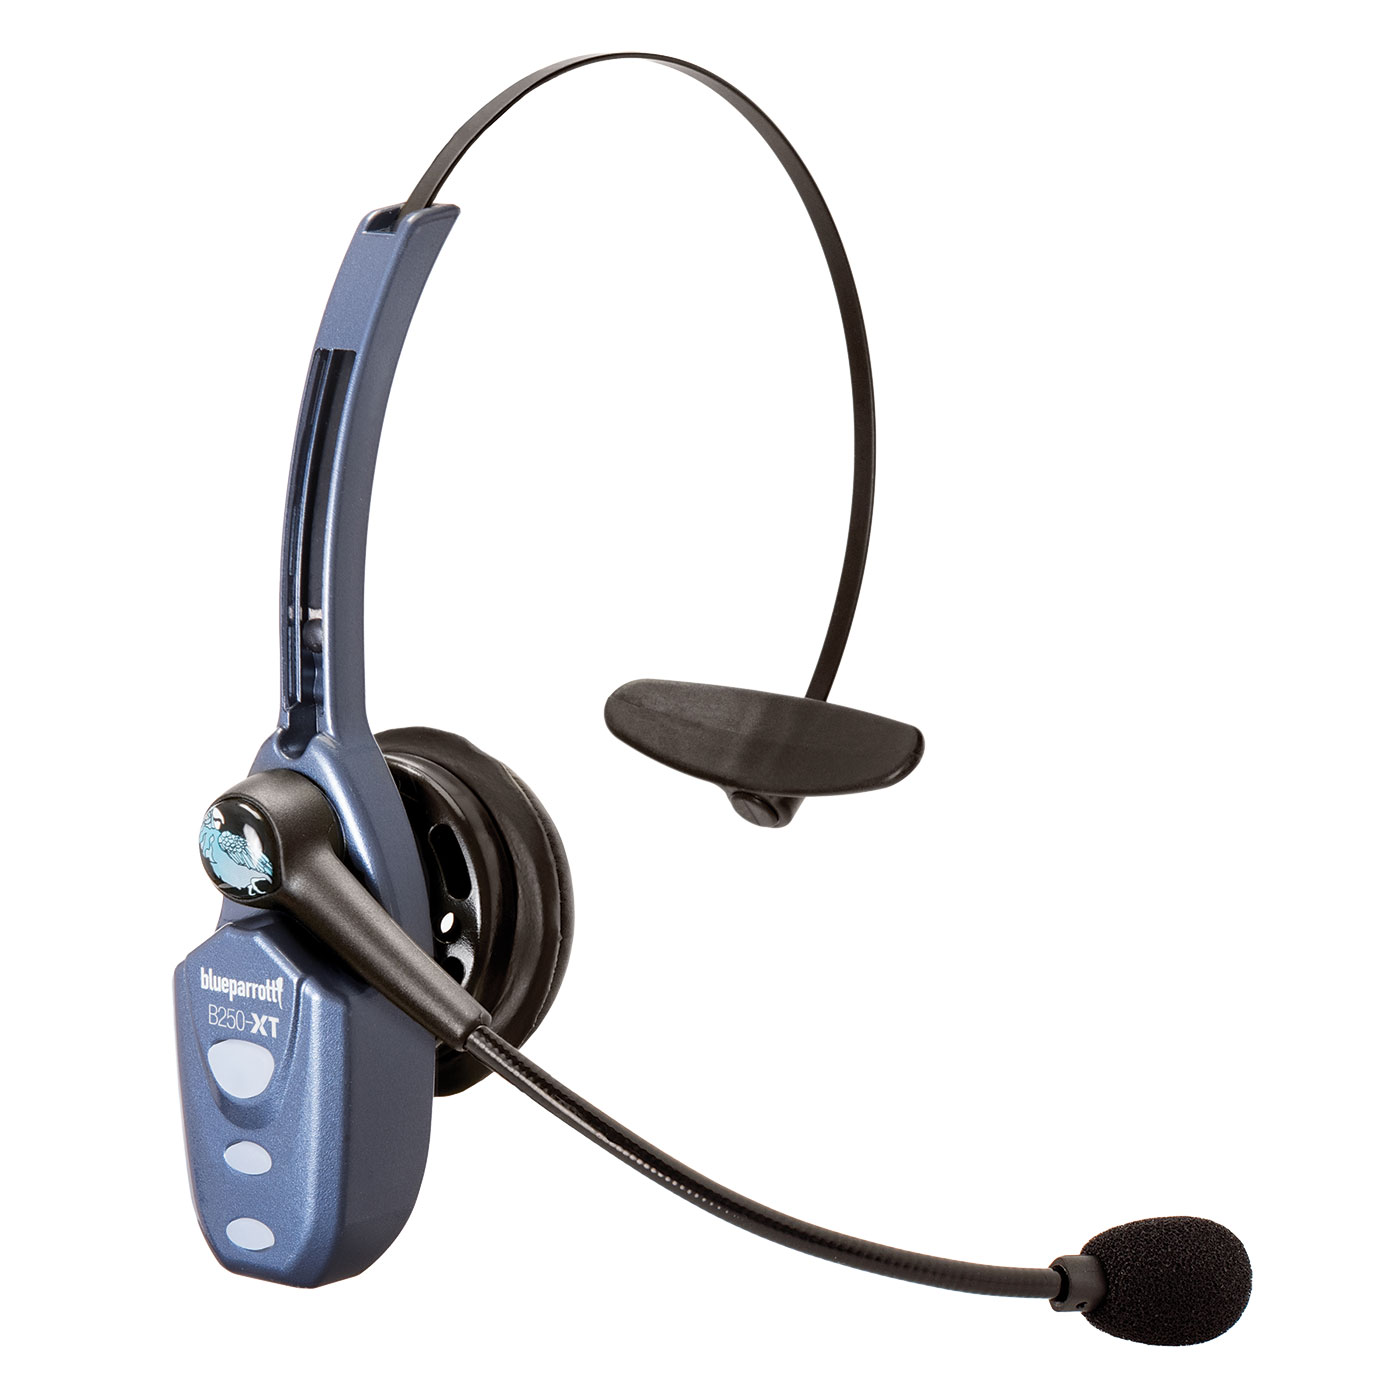 af9633bed8c Clear sound with Wideband audio & noise cancellation